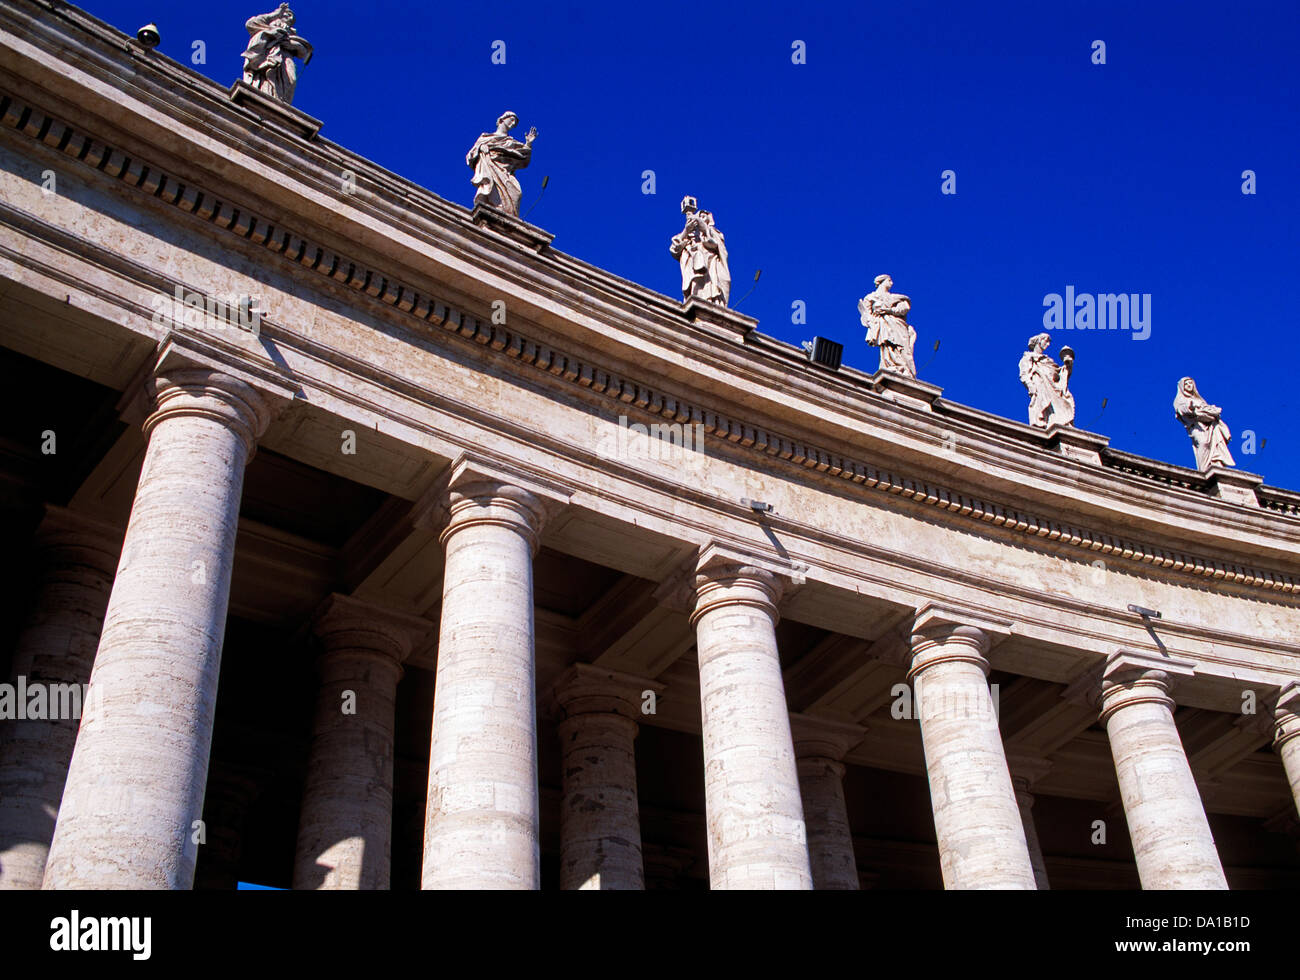 Detail of St. Peters, Rome, Italy - Stock Image